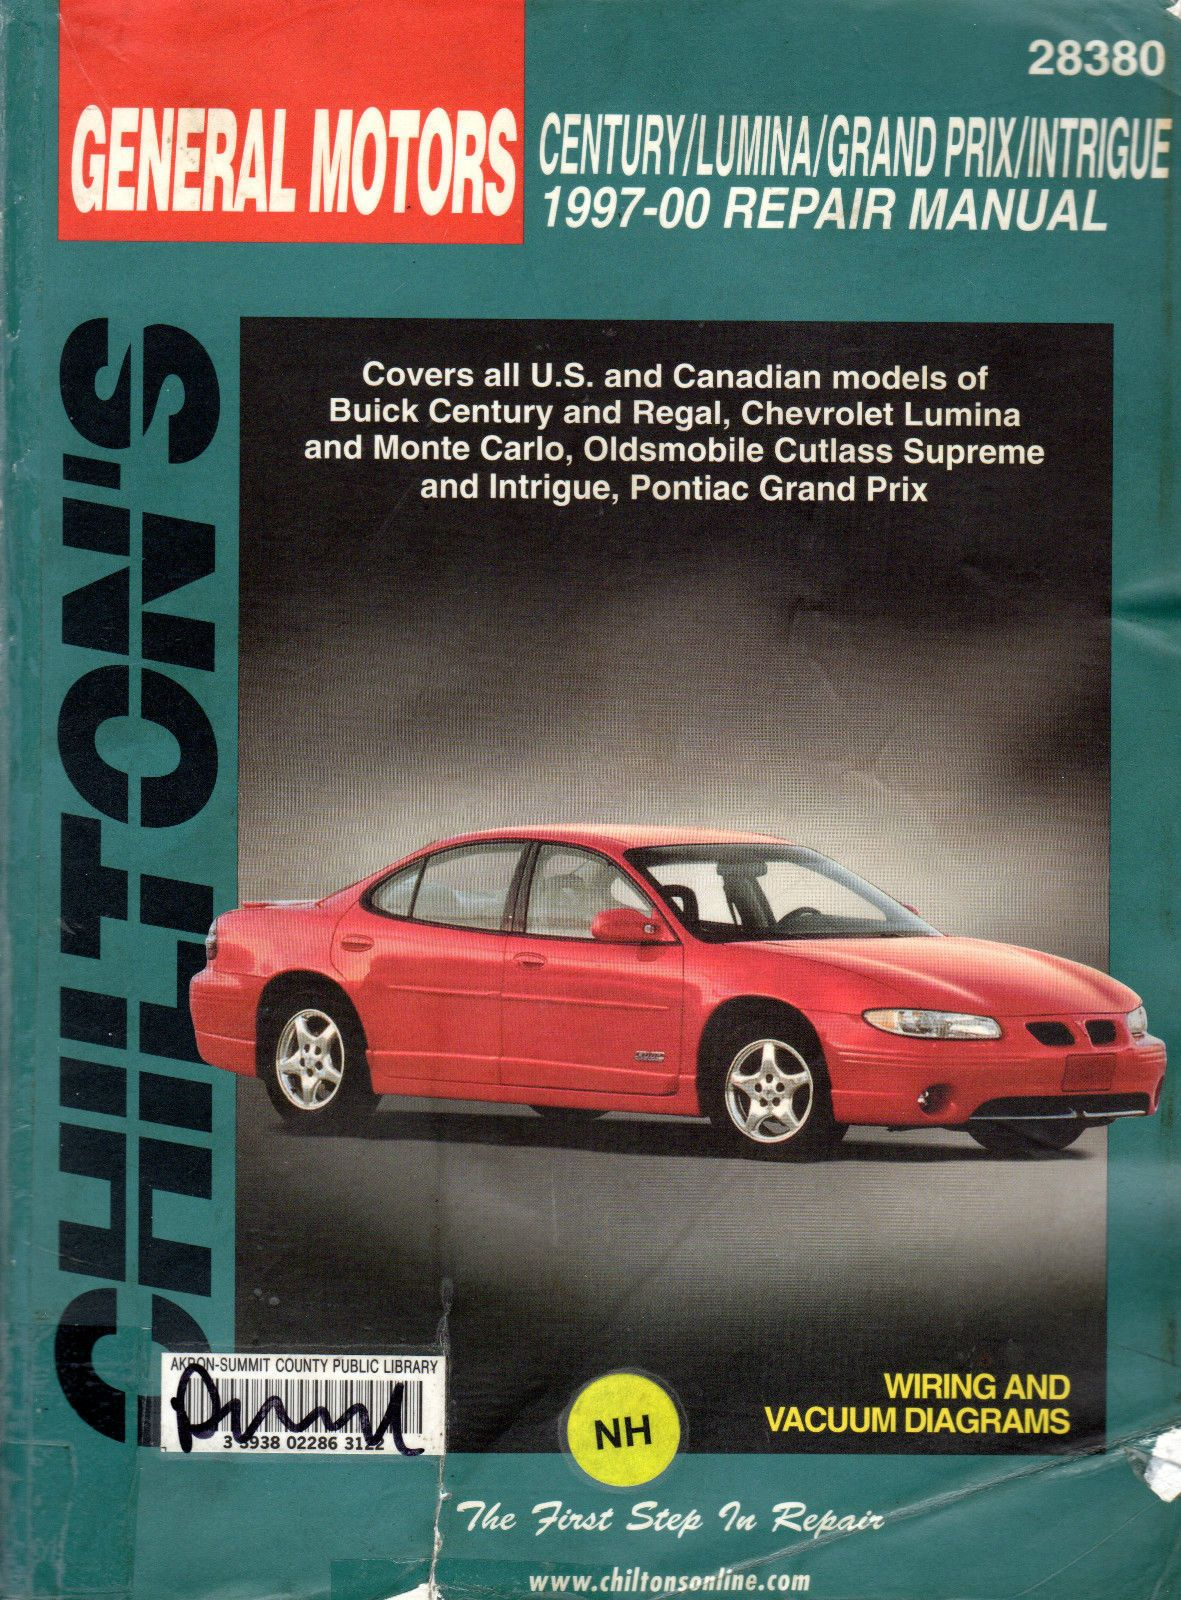 ManualsPRO - Chilton 28380 Manual GM Century Lumina Grand Prix and  Intrigue1997-00 https: